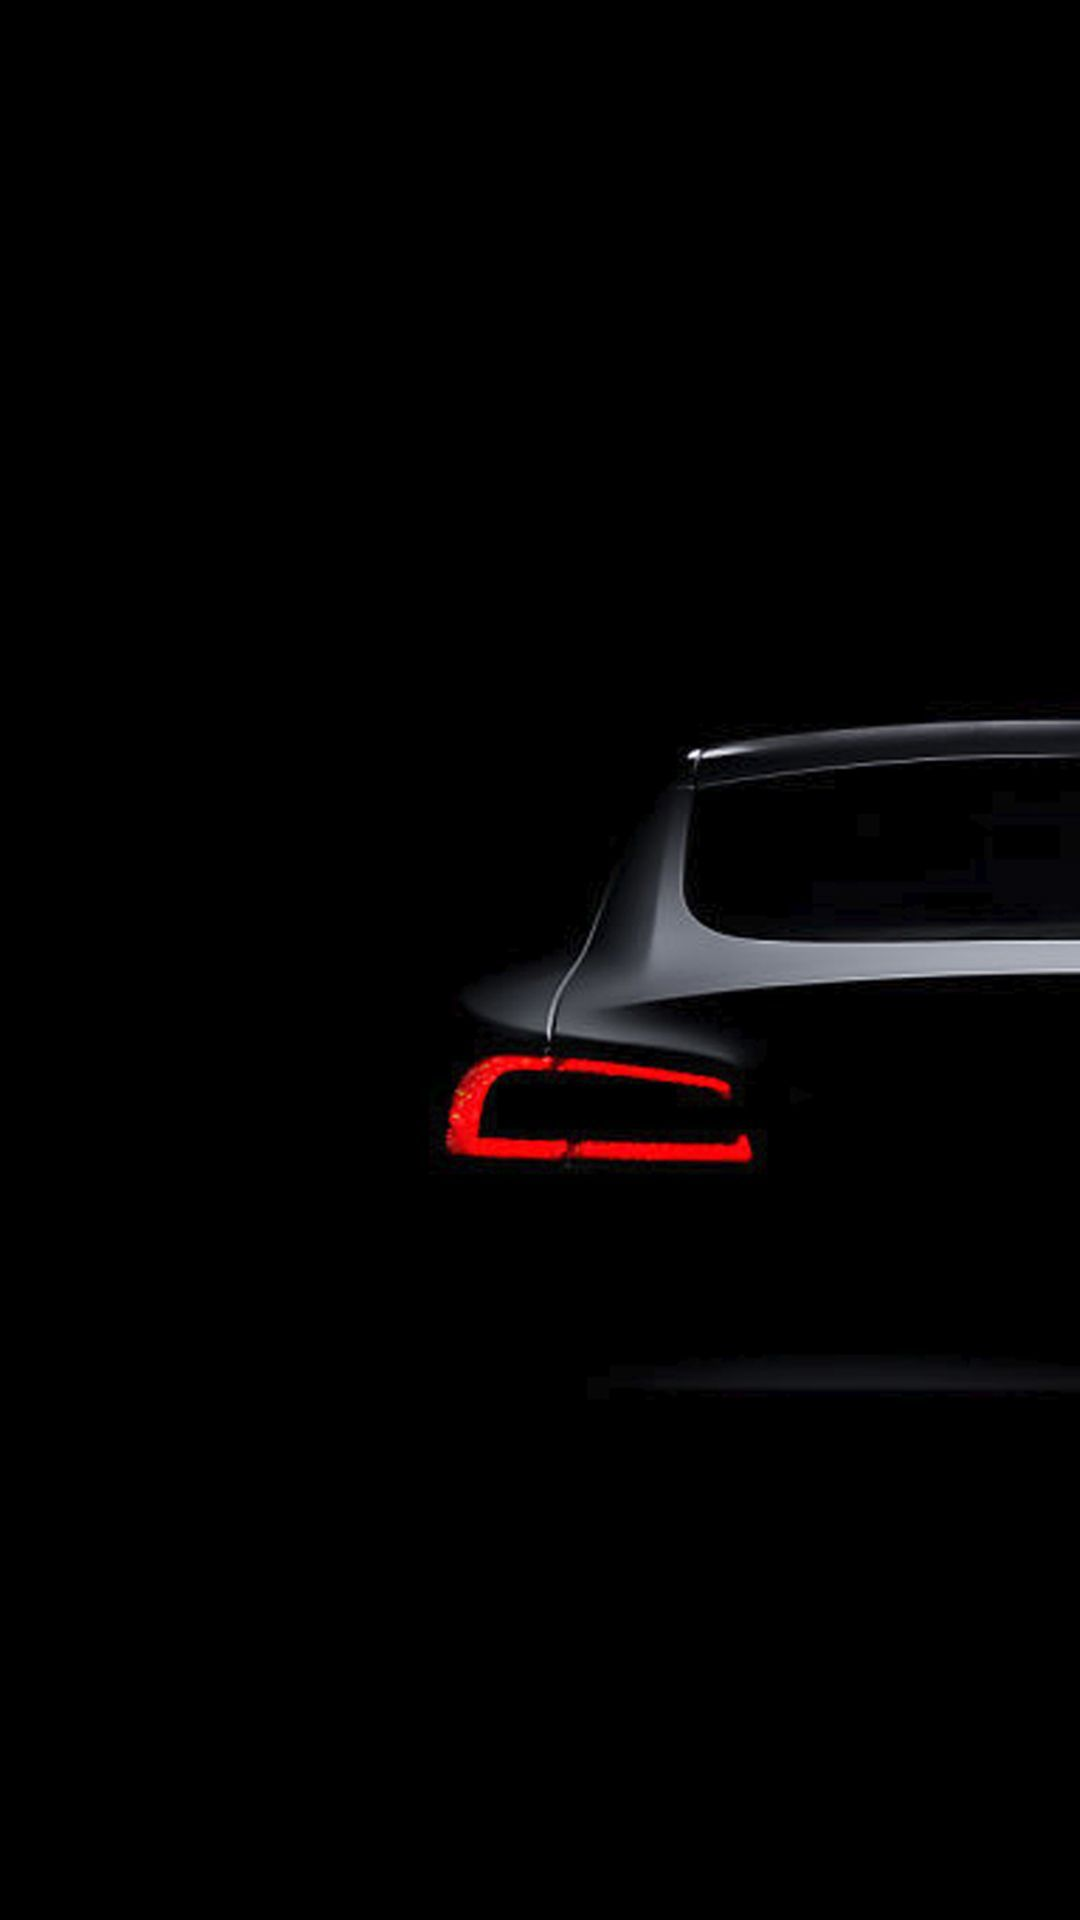 Tesla Model S Dark Brake Light iPhone 6+ HD Wallpaper.jpg